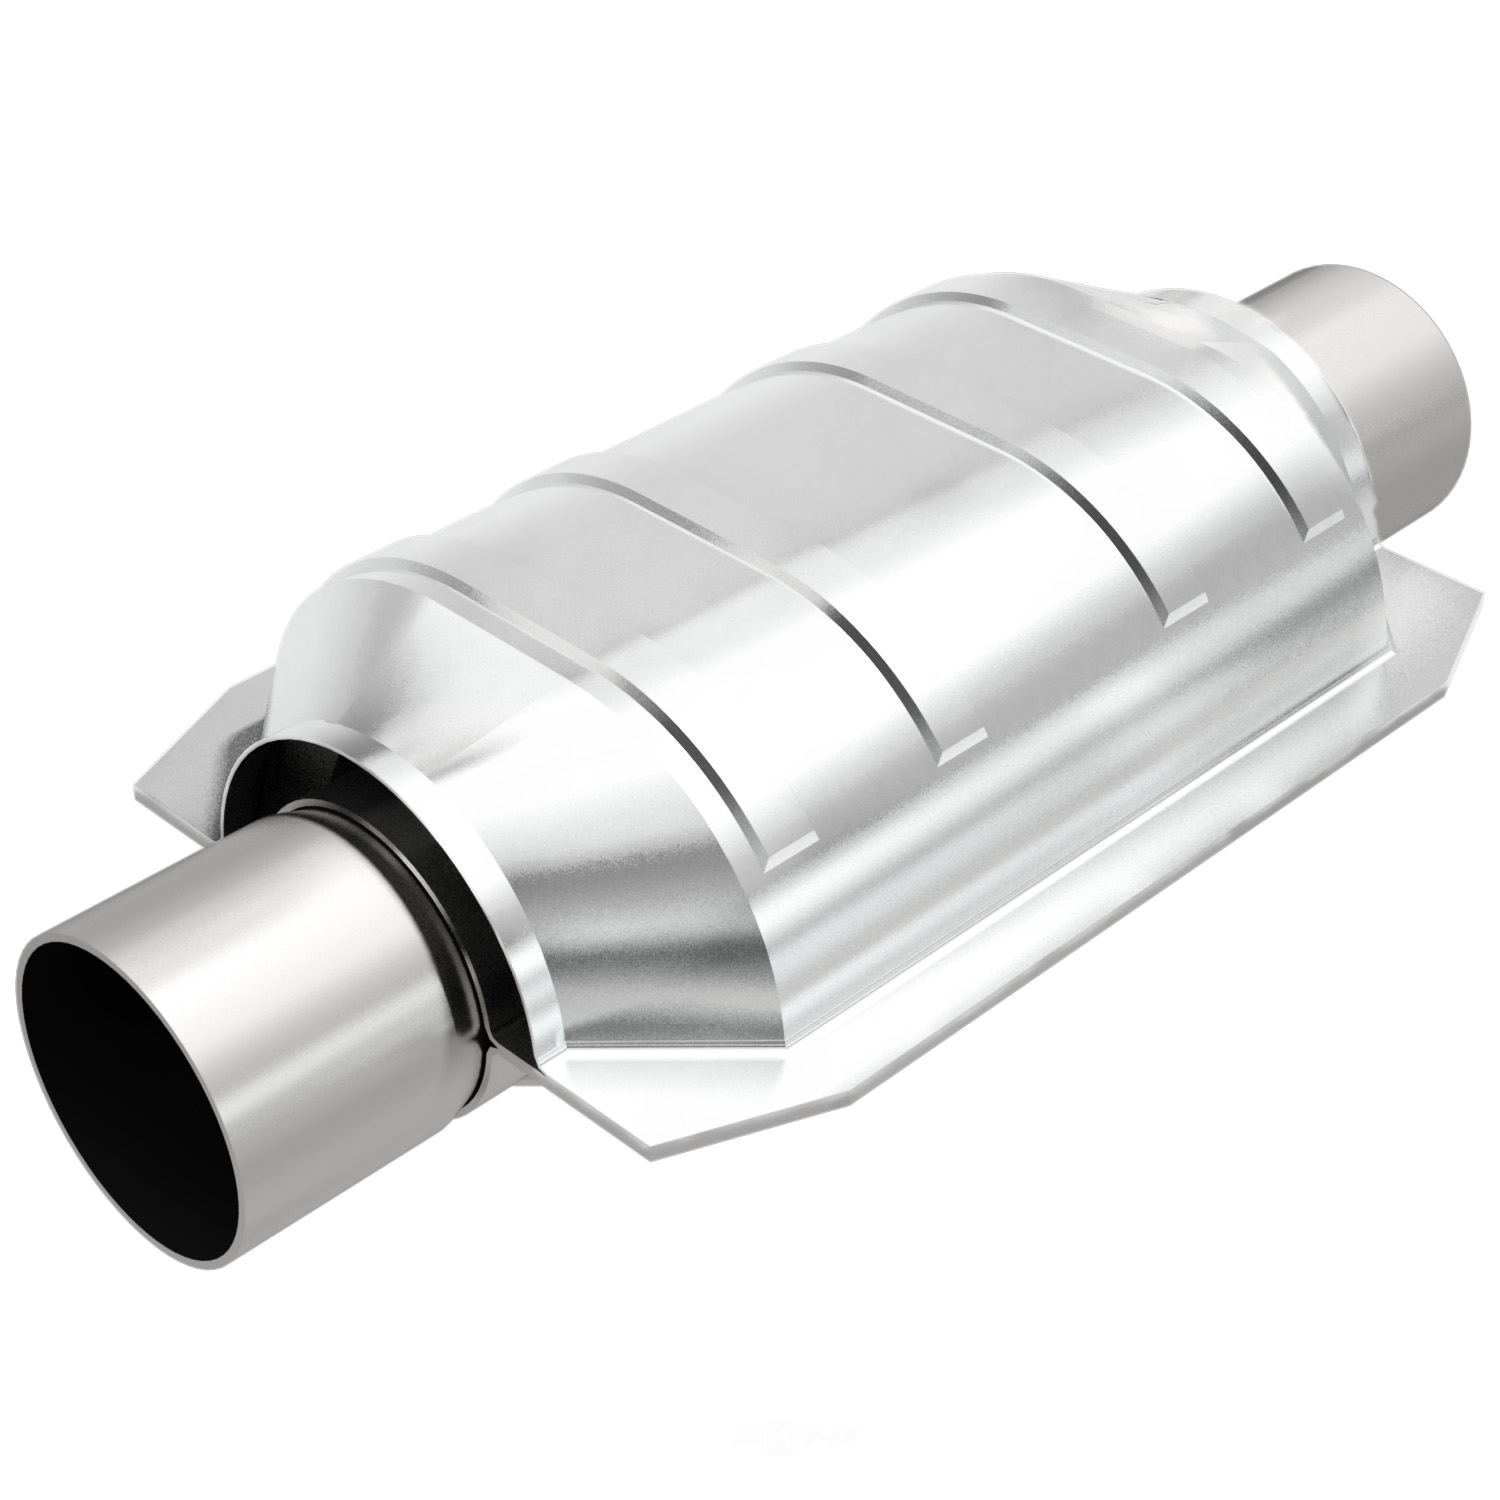 MAGNAFLOW NEW YORK CONVERTER - 2in. Universal California OBDII Catalytic Converter - MNY 441304